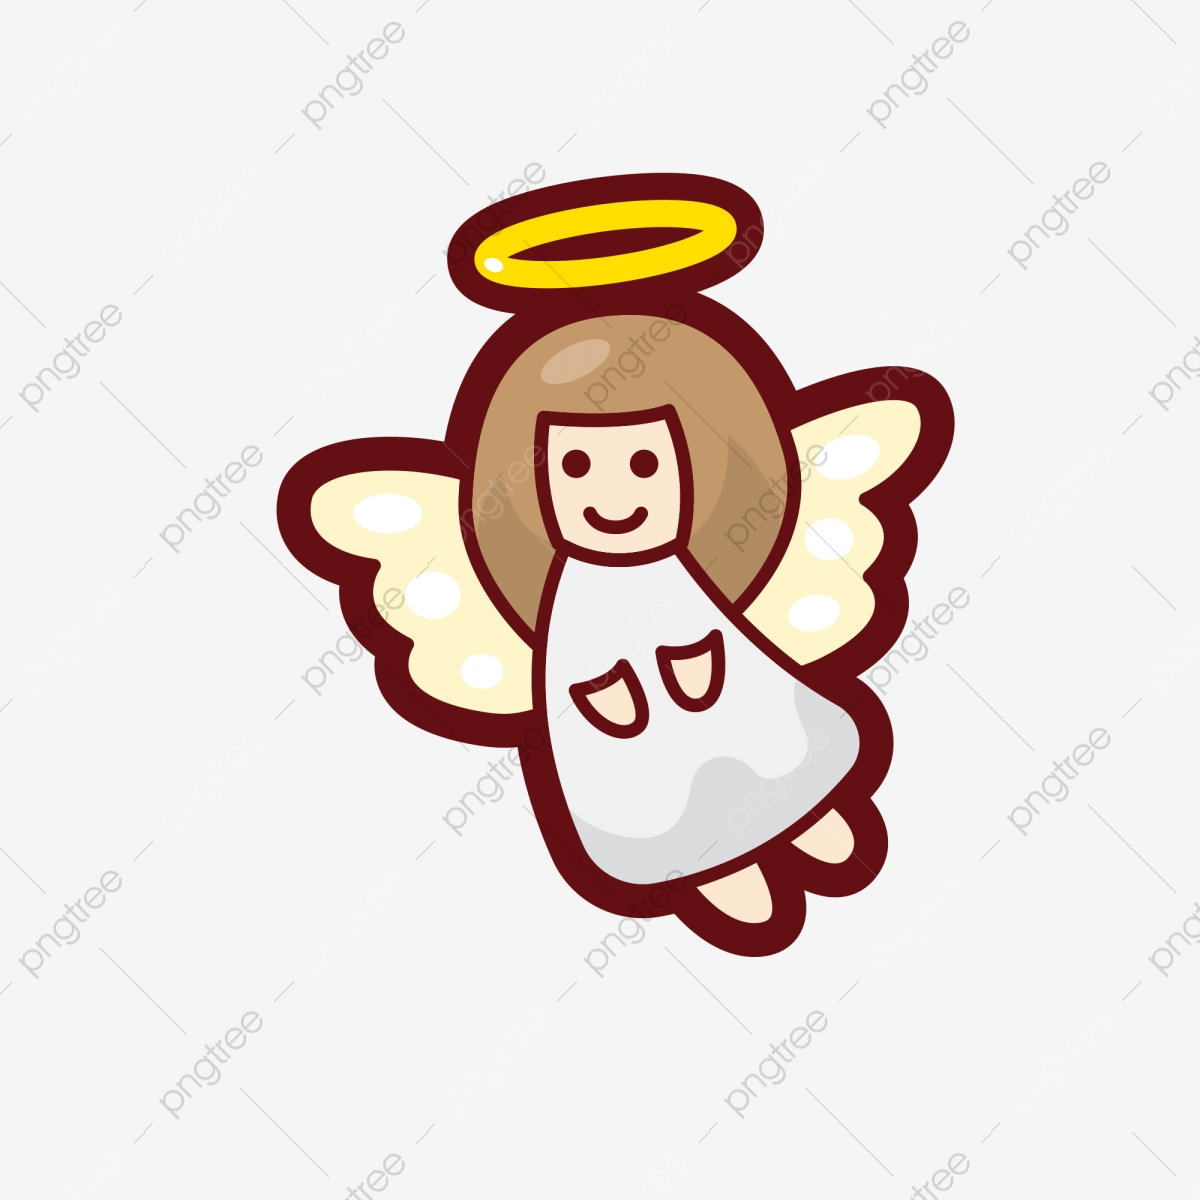 Cartoon Angel Angel Clipart Little Angel Angel Png Transparent Clipart Image And Psd File For Free Download